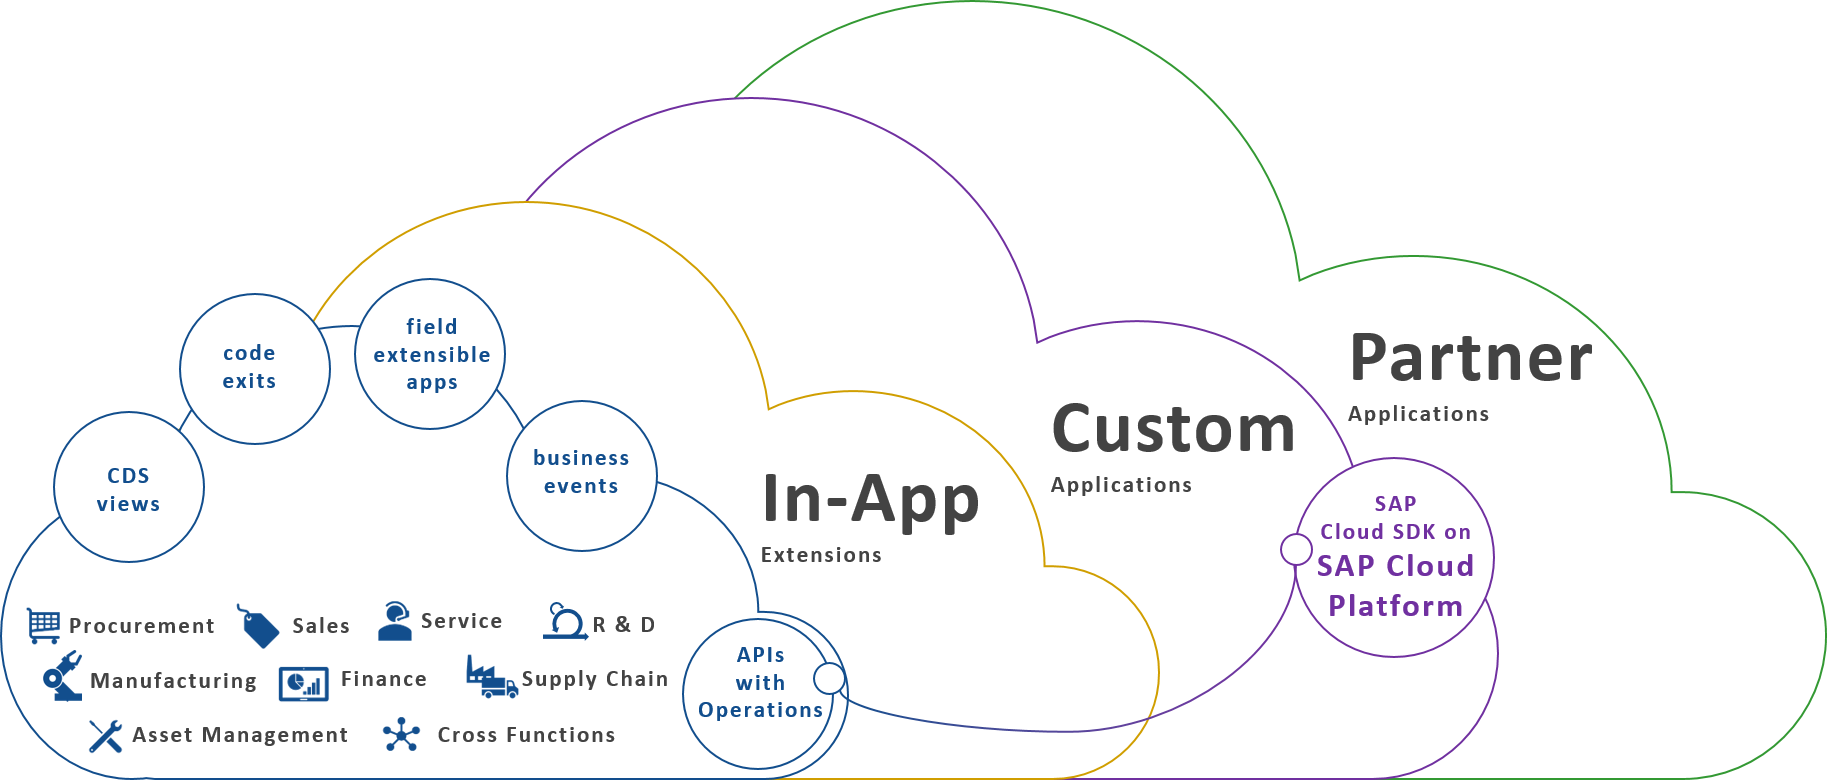 Cloud Platform Extensions